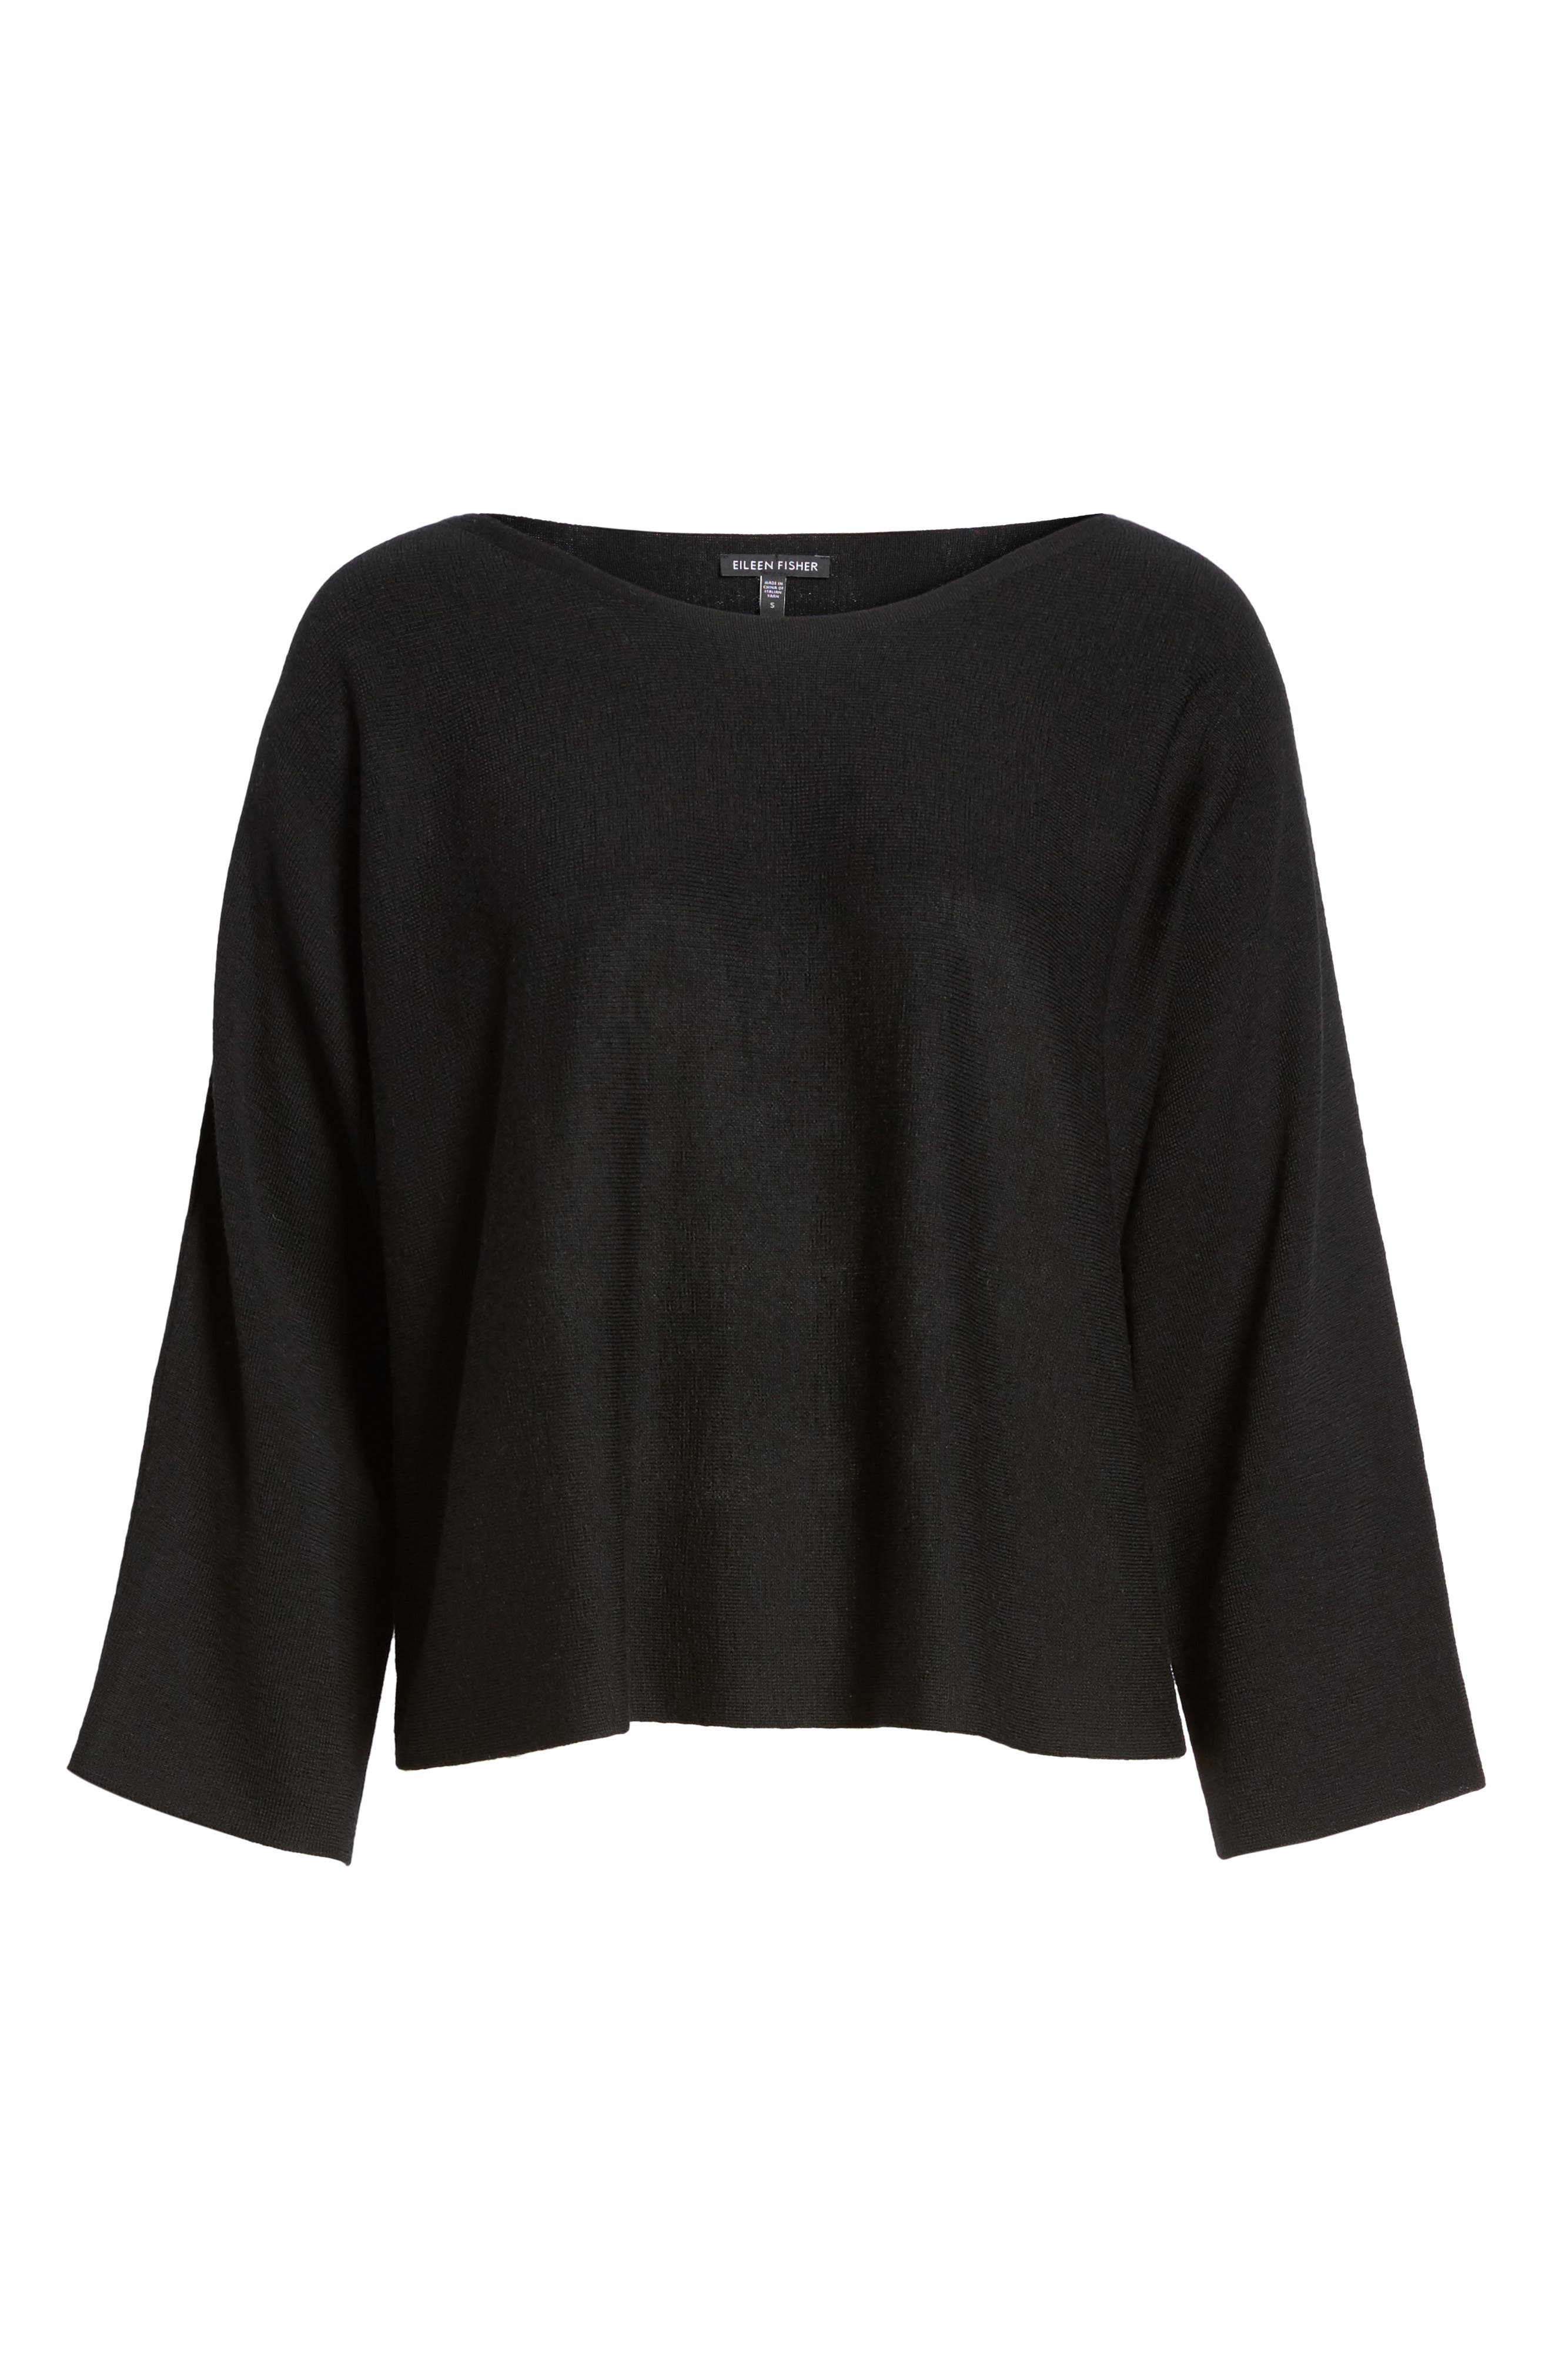 Crop Merino Wool Sweater,                             Alternate thumbnail 6, color,                             Black